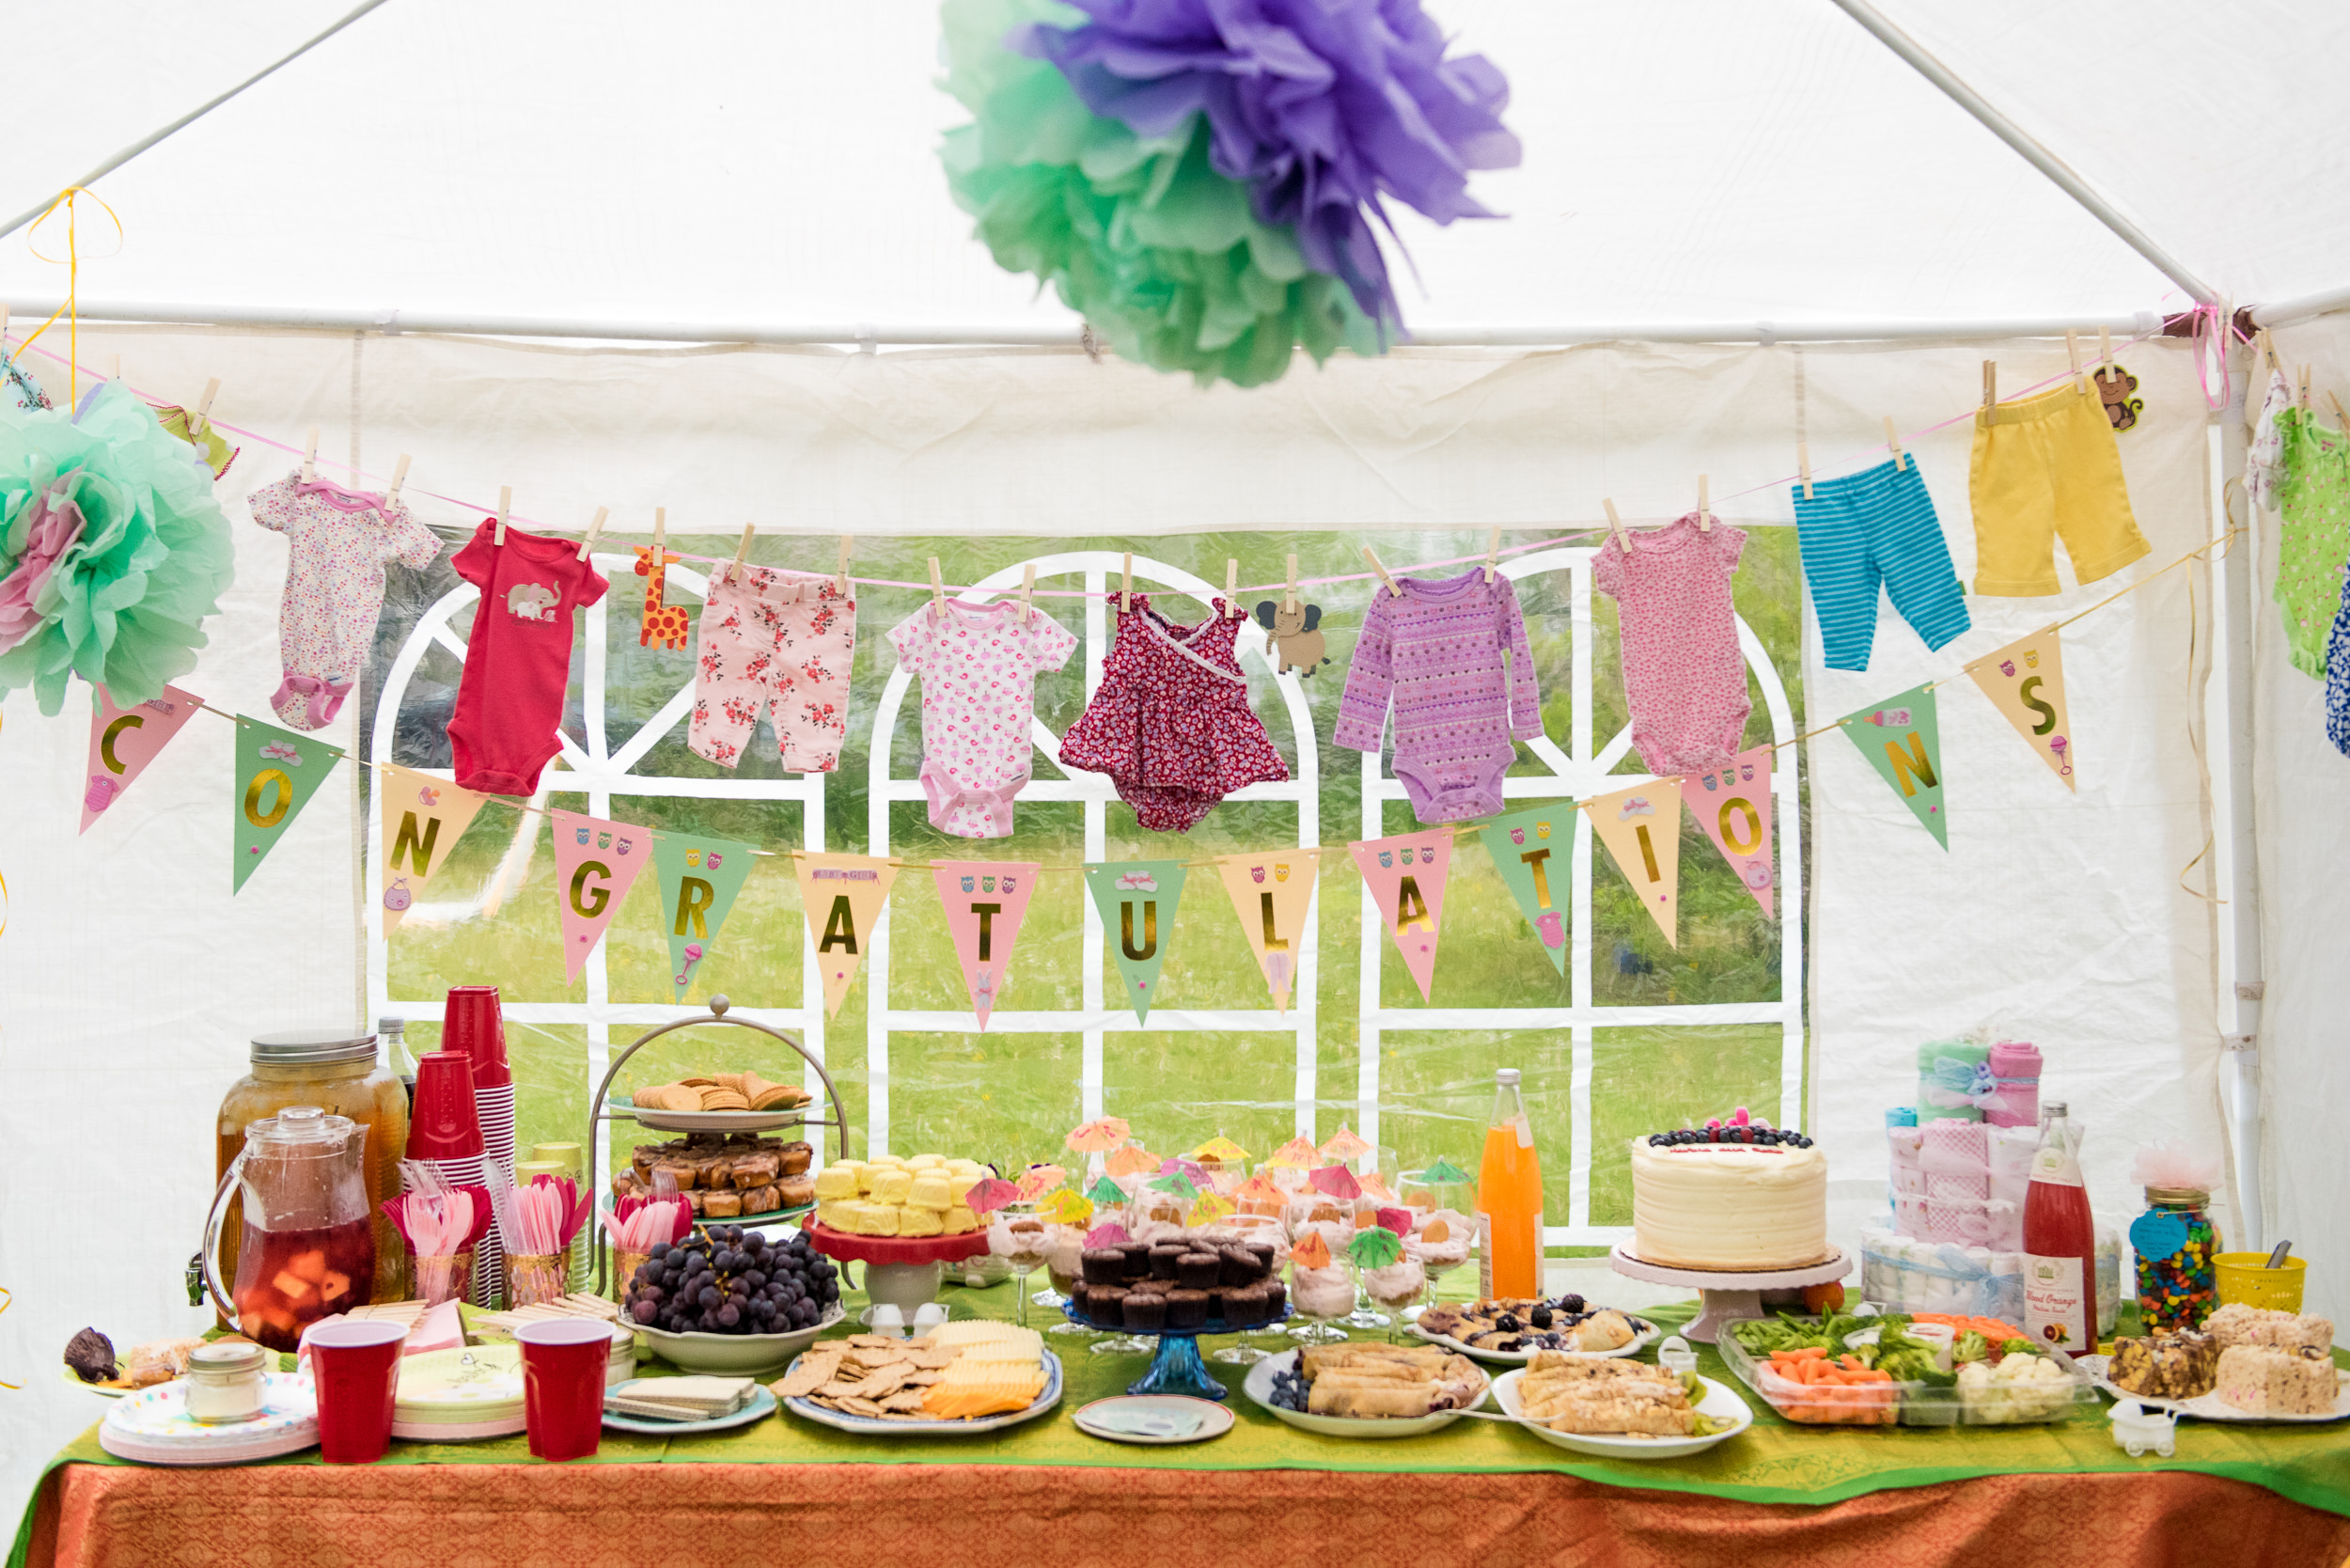 Documentary Family Photography in Denver, Colorado - baby shower decorations and refreshments